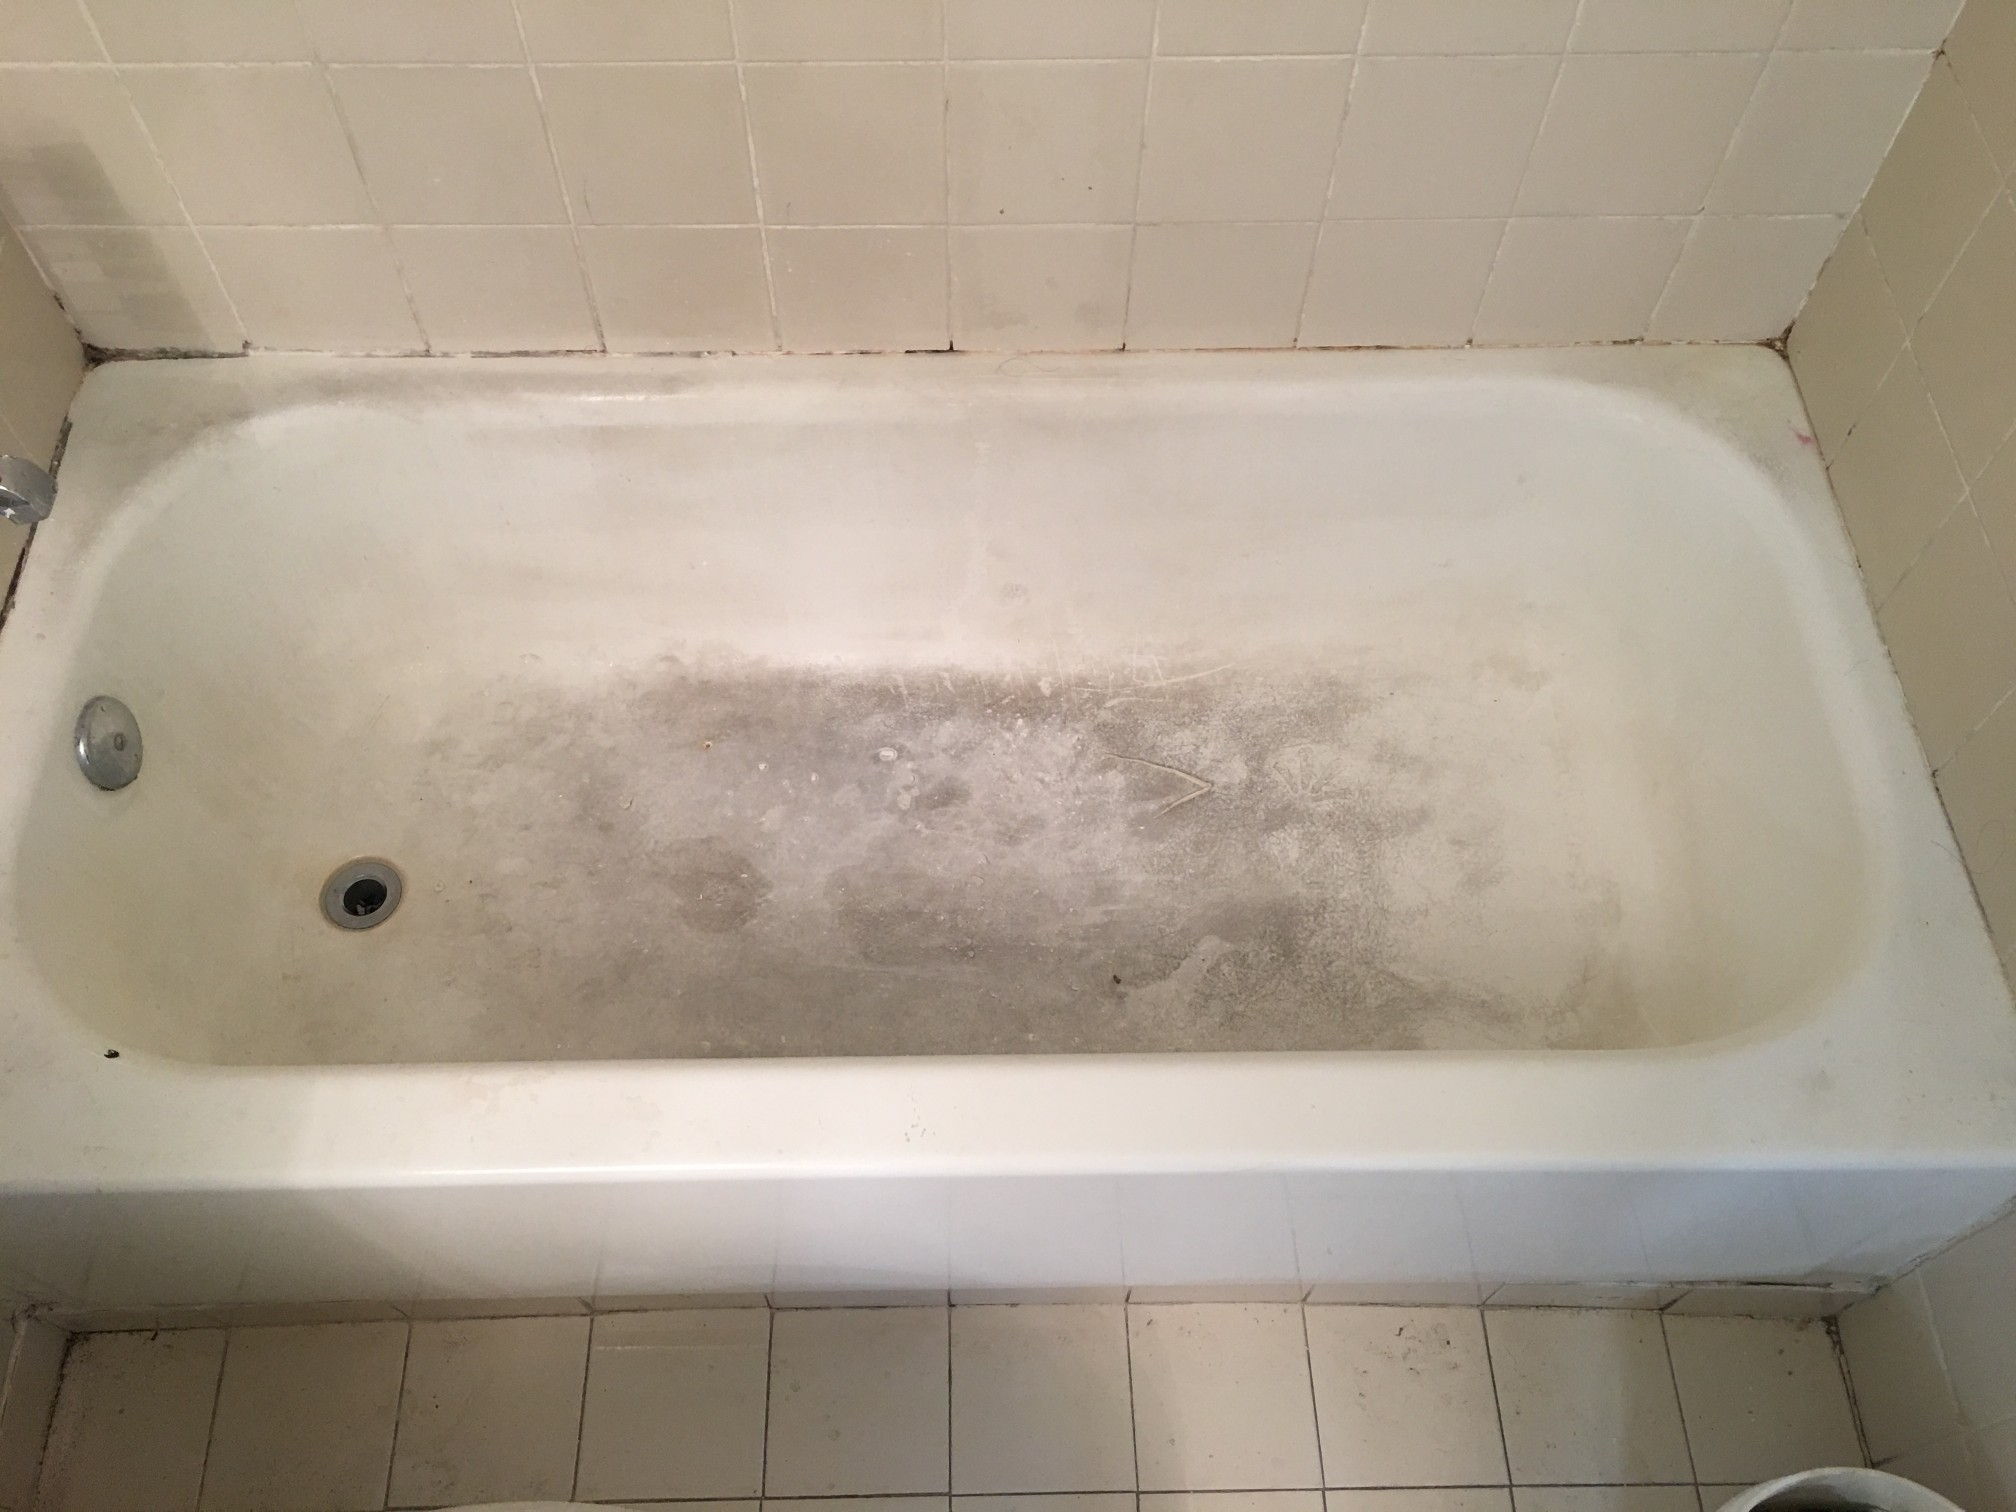 America Bathtub | Bathtub Refinishing in Miami, FL (305) 752-3222